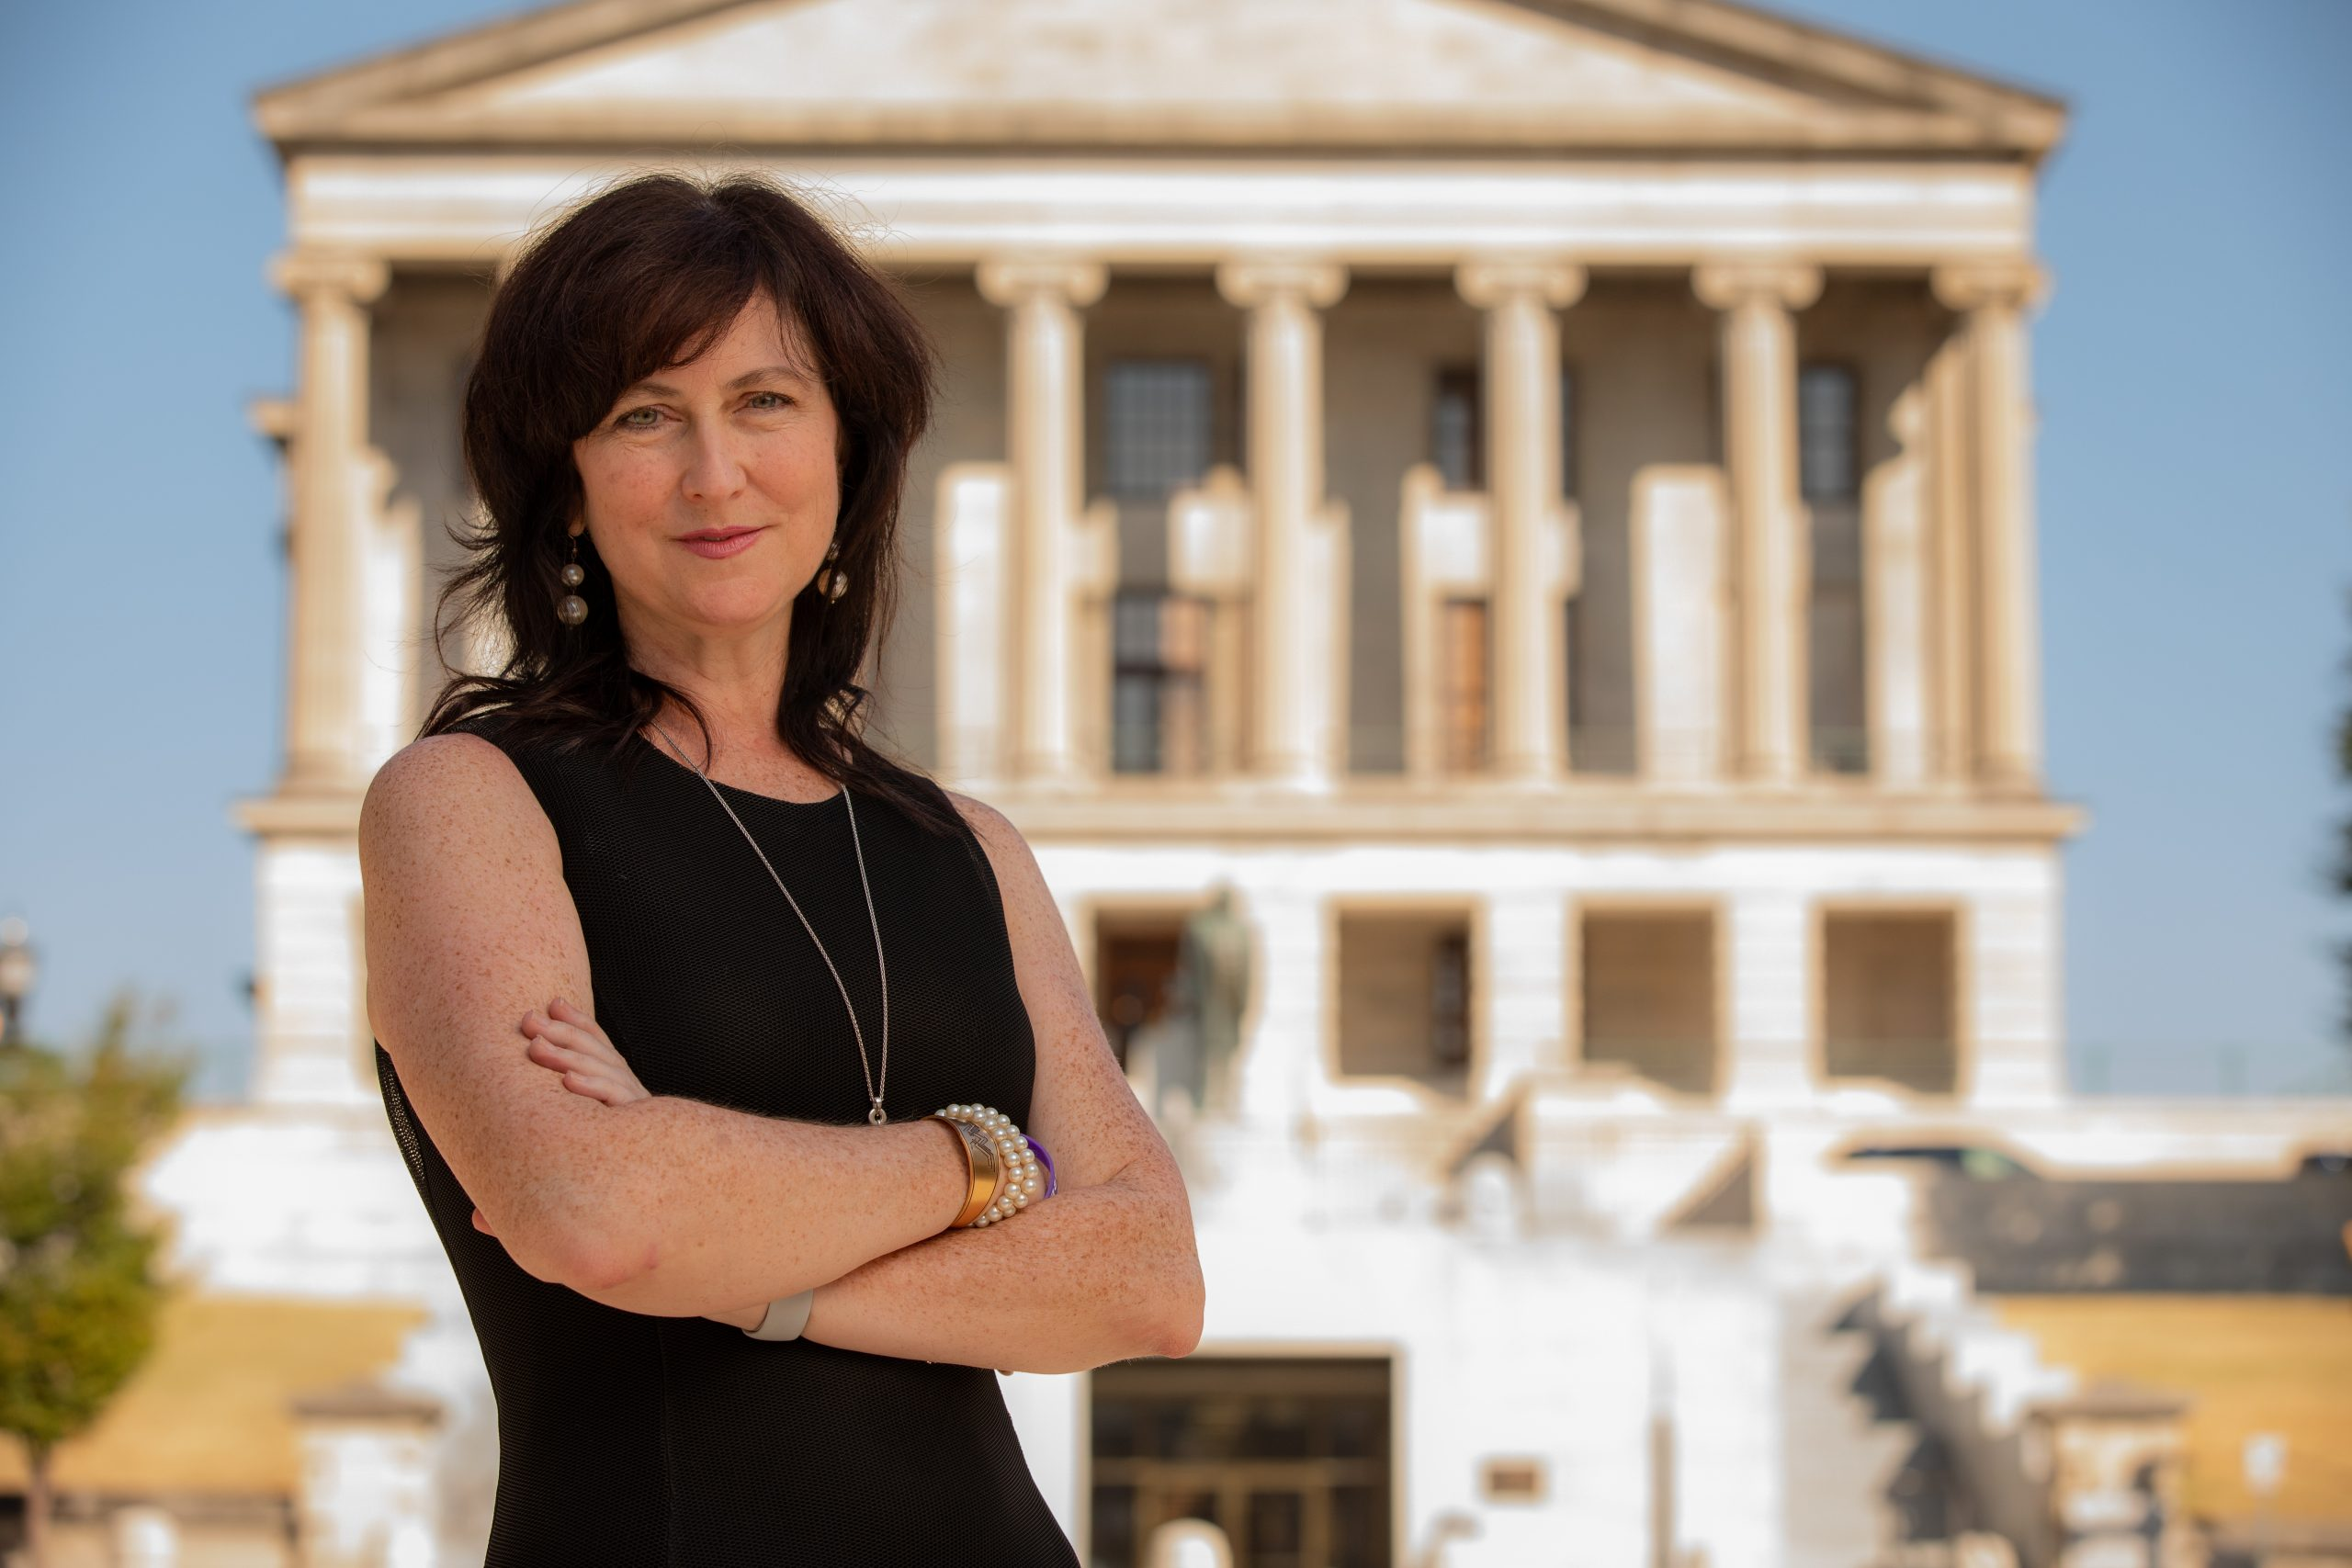 Michele Johnson, Executive Director of the Tennessee Justice Center